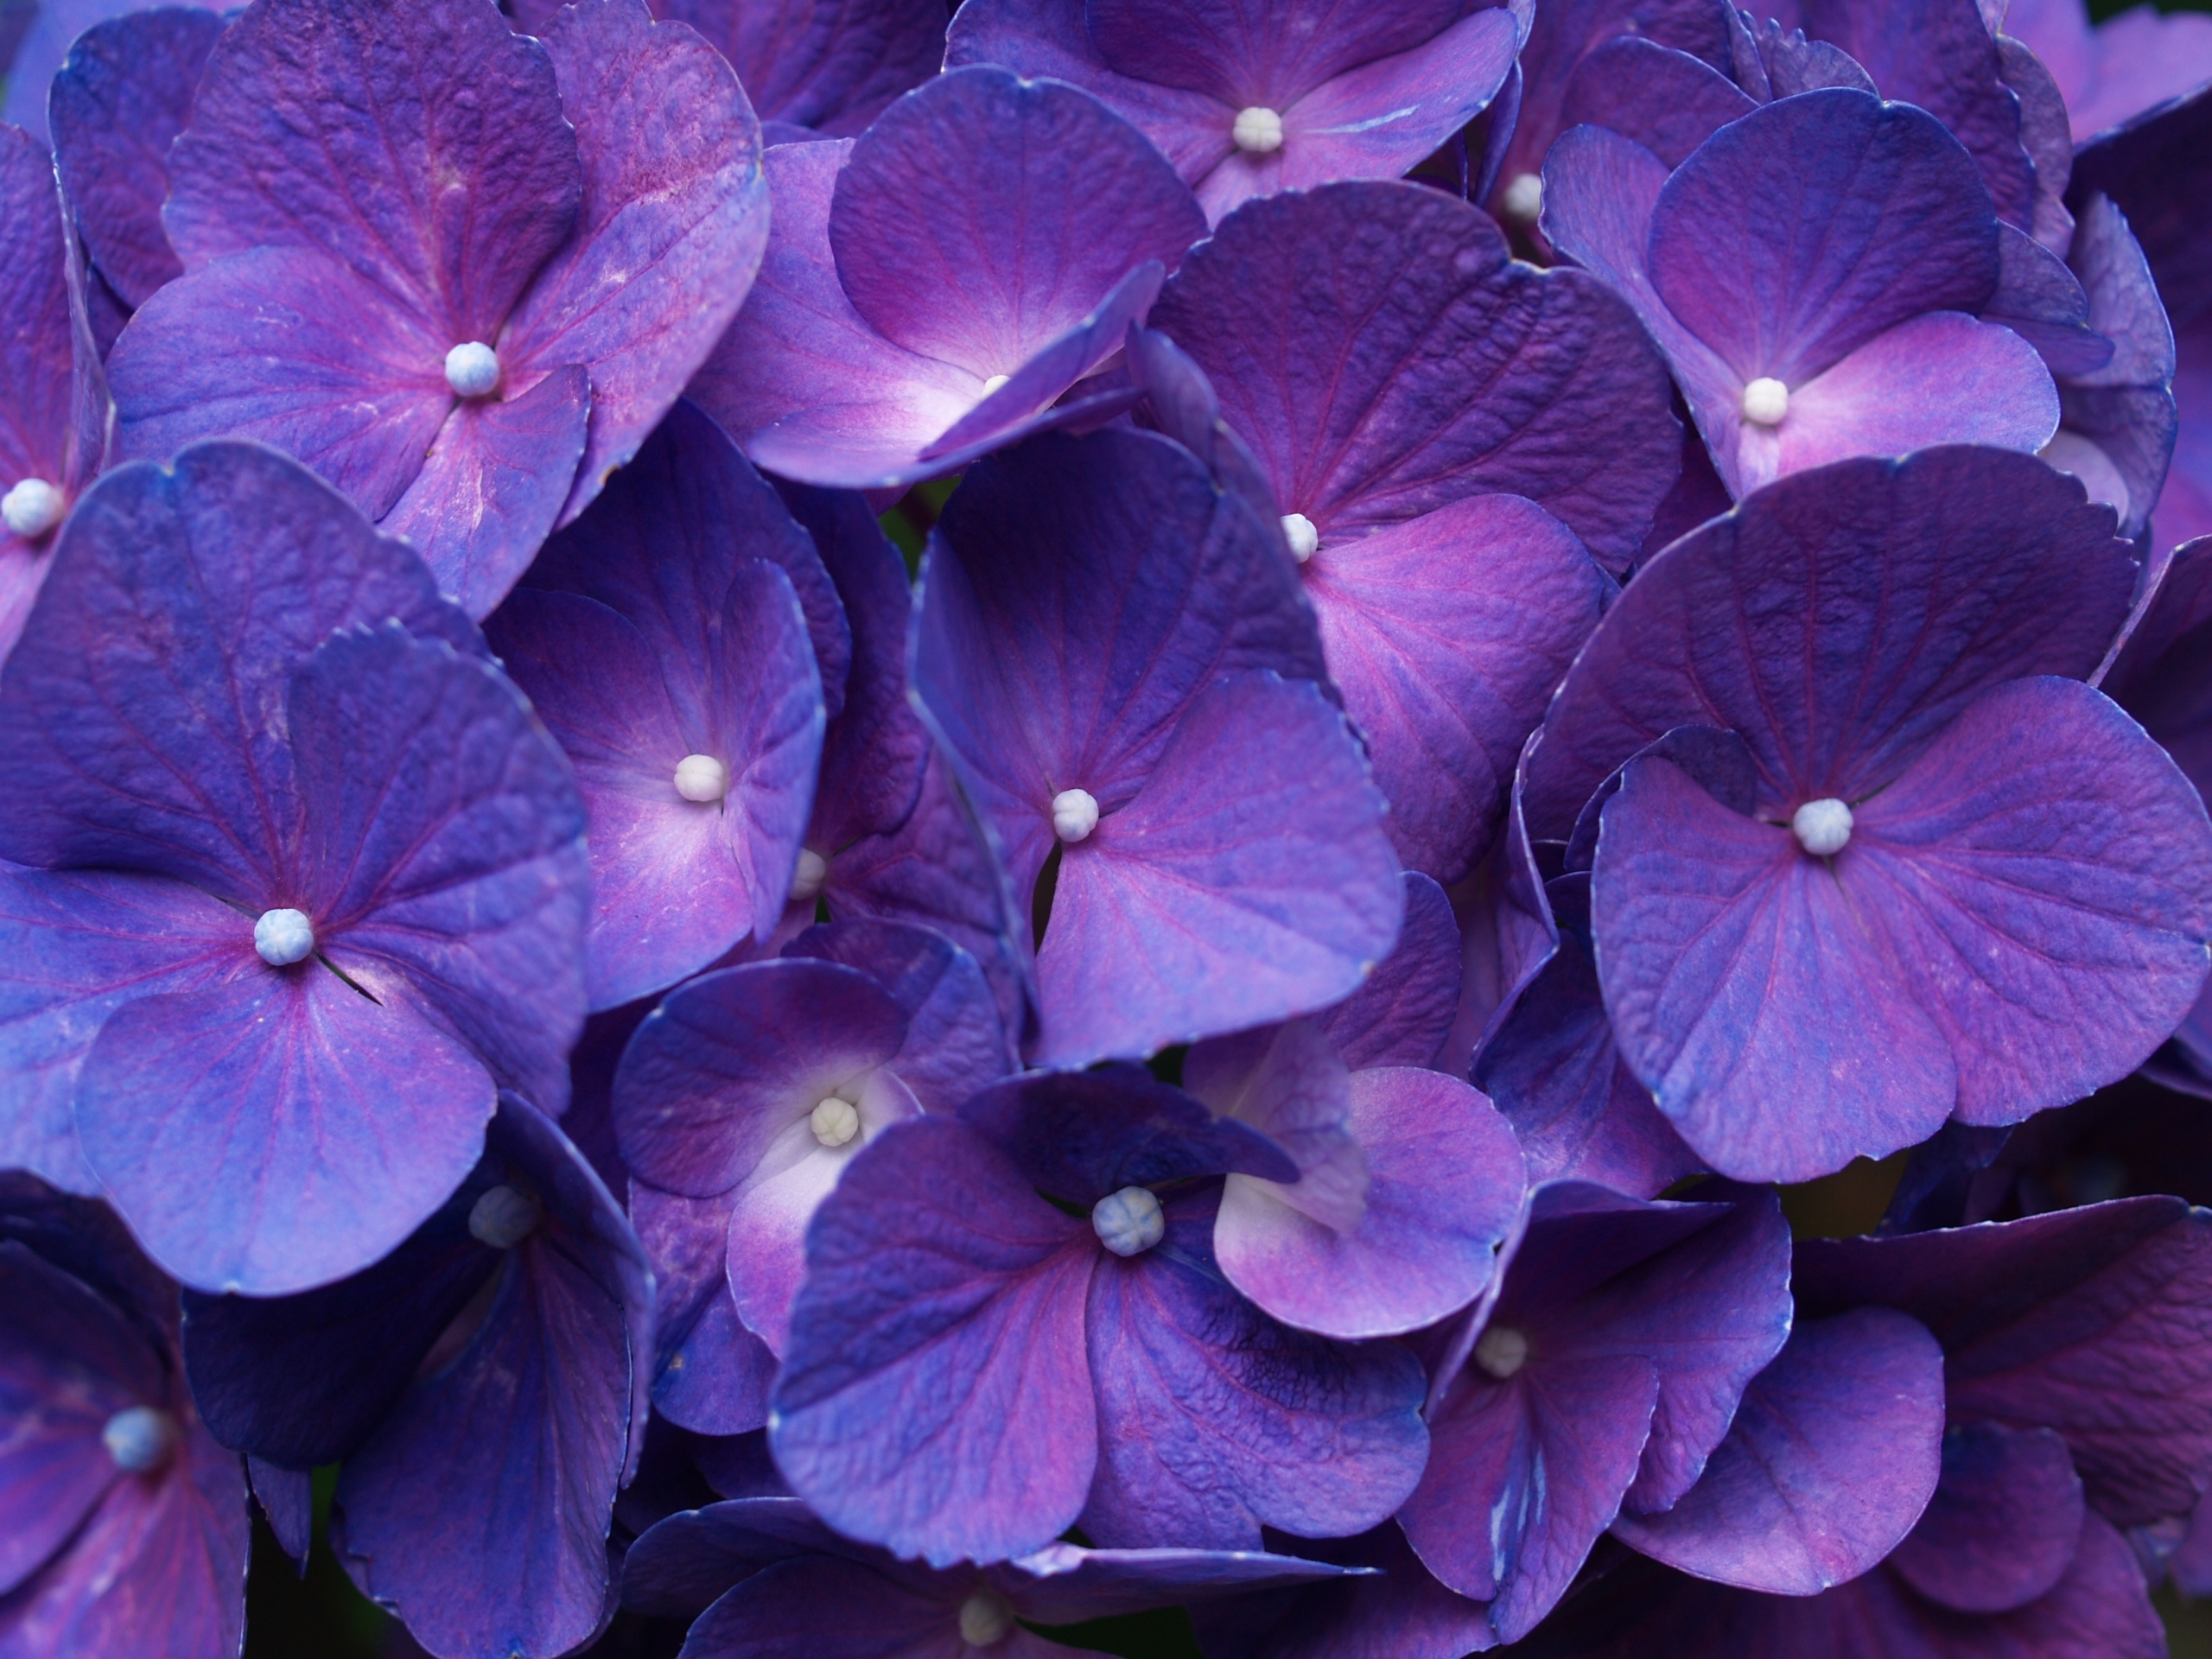 http://www.bhmpics.com/walls/hydrangea_purple-normal.jpg